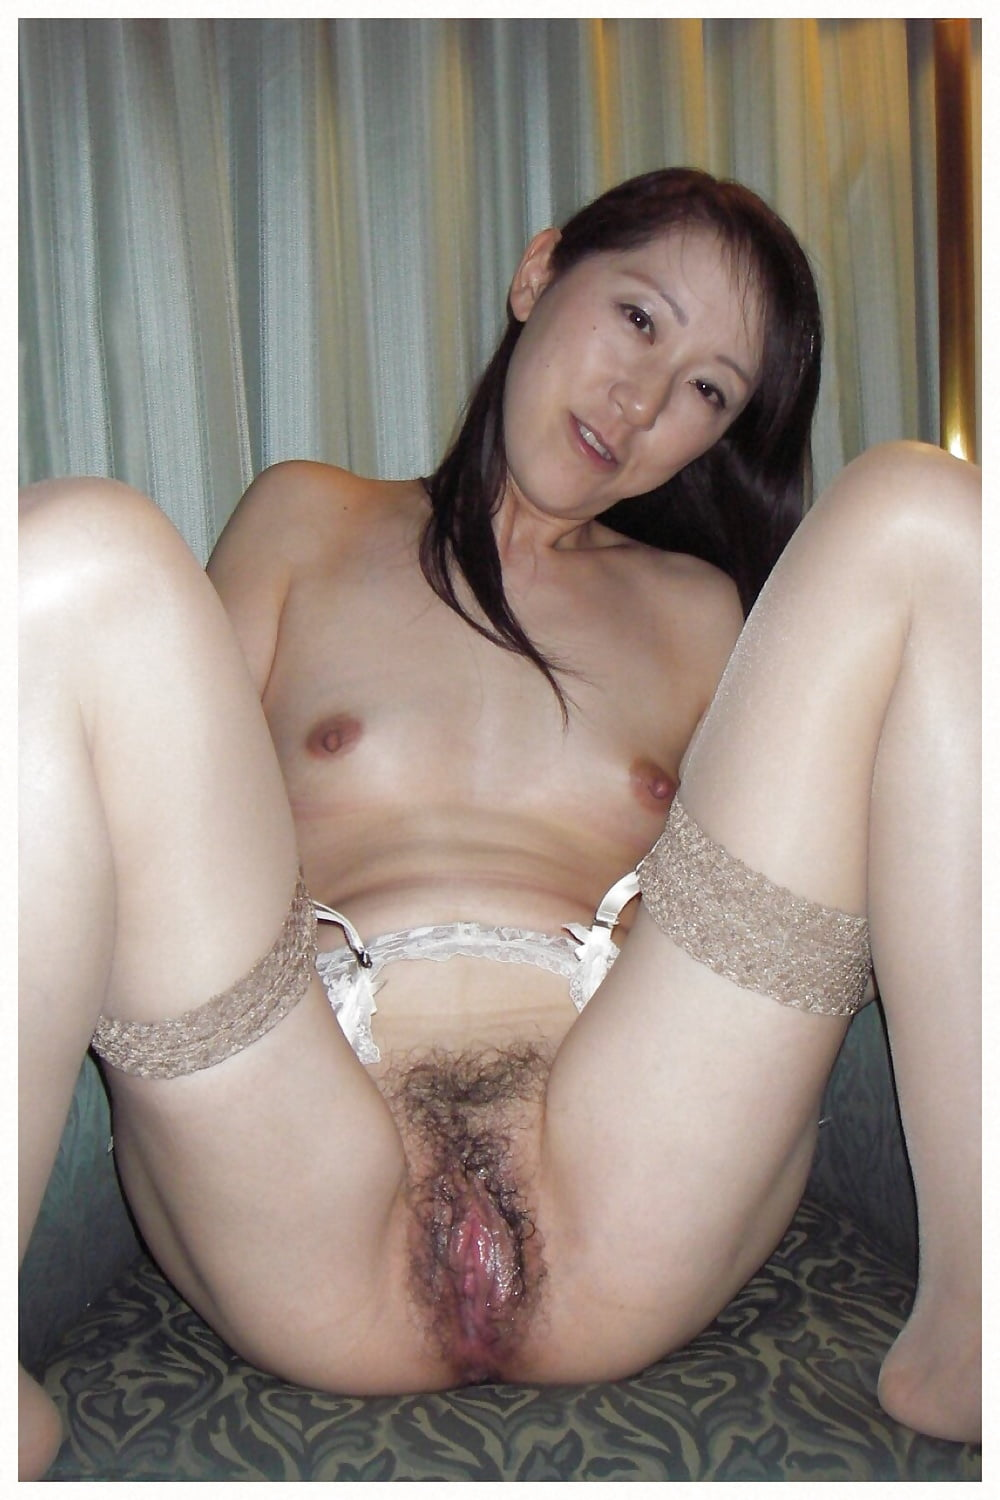 Hot japanese wives naked — photo 15